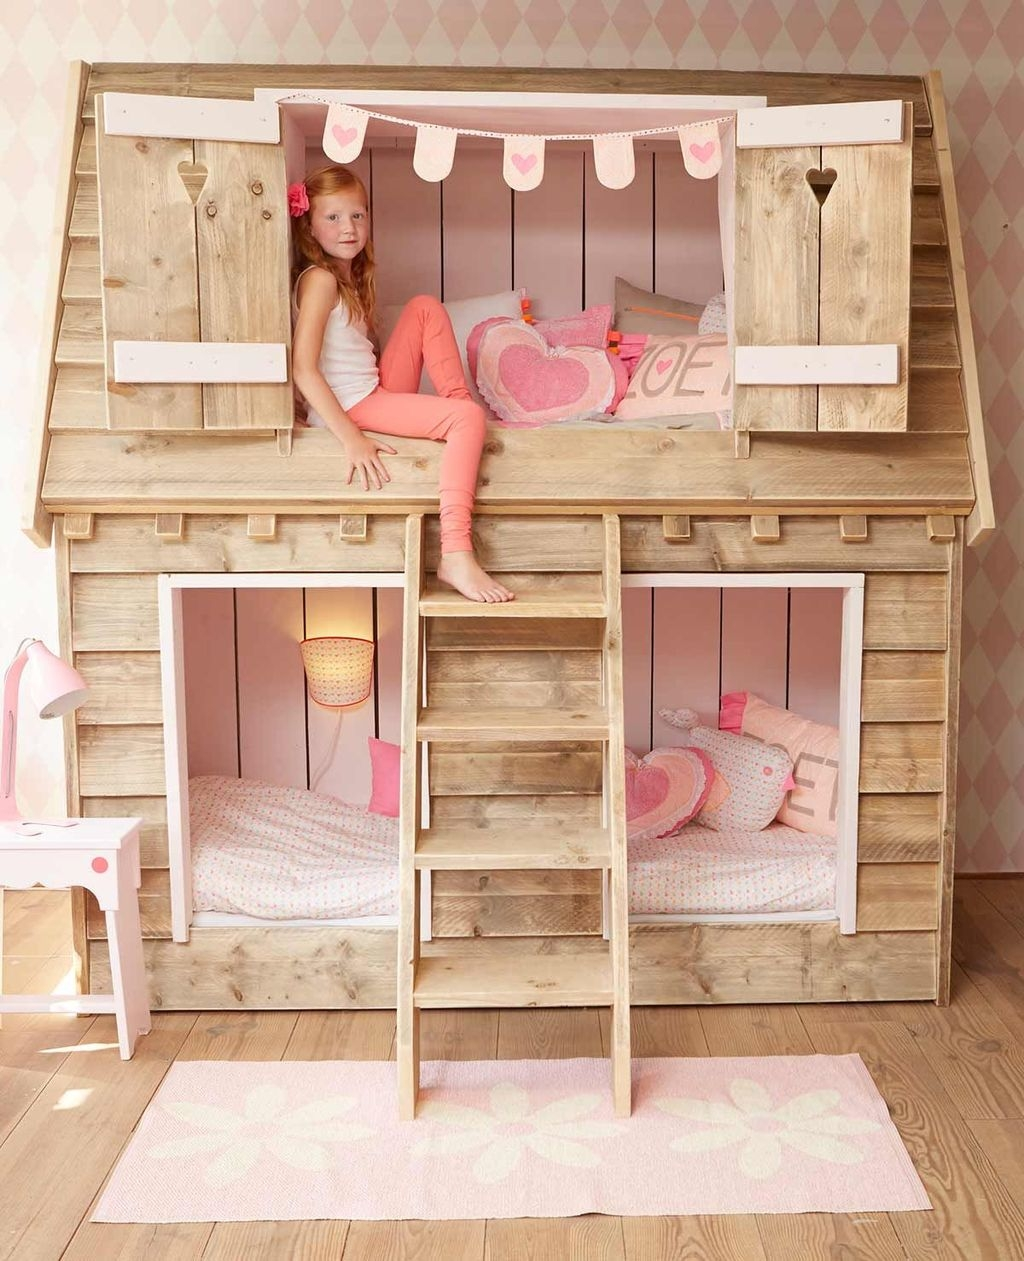 Cool And Functional Built In Bunk Beds Ideas For Kids37